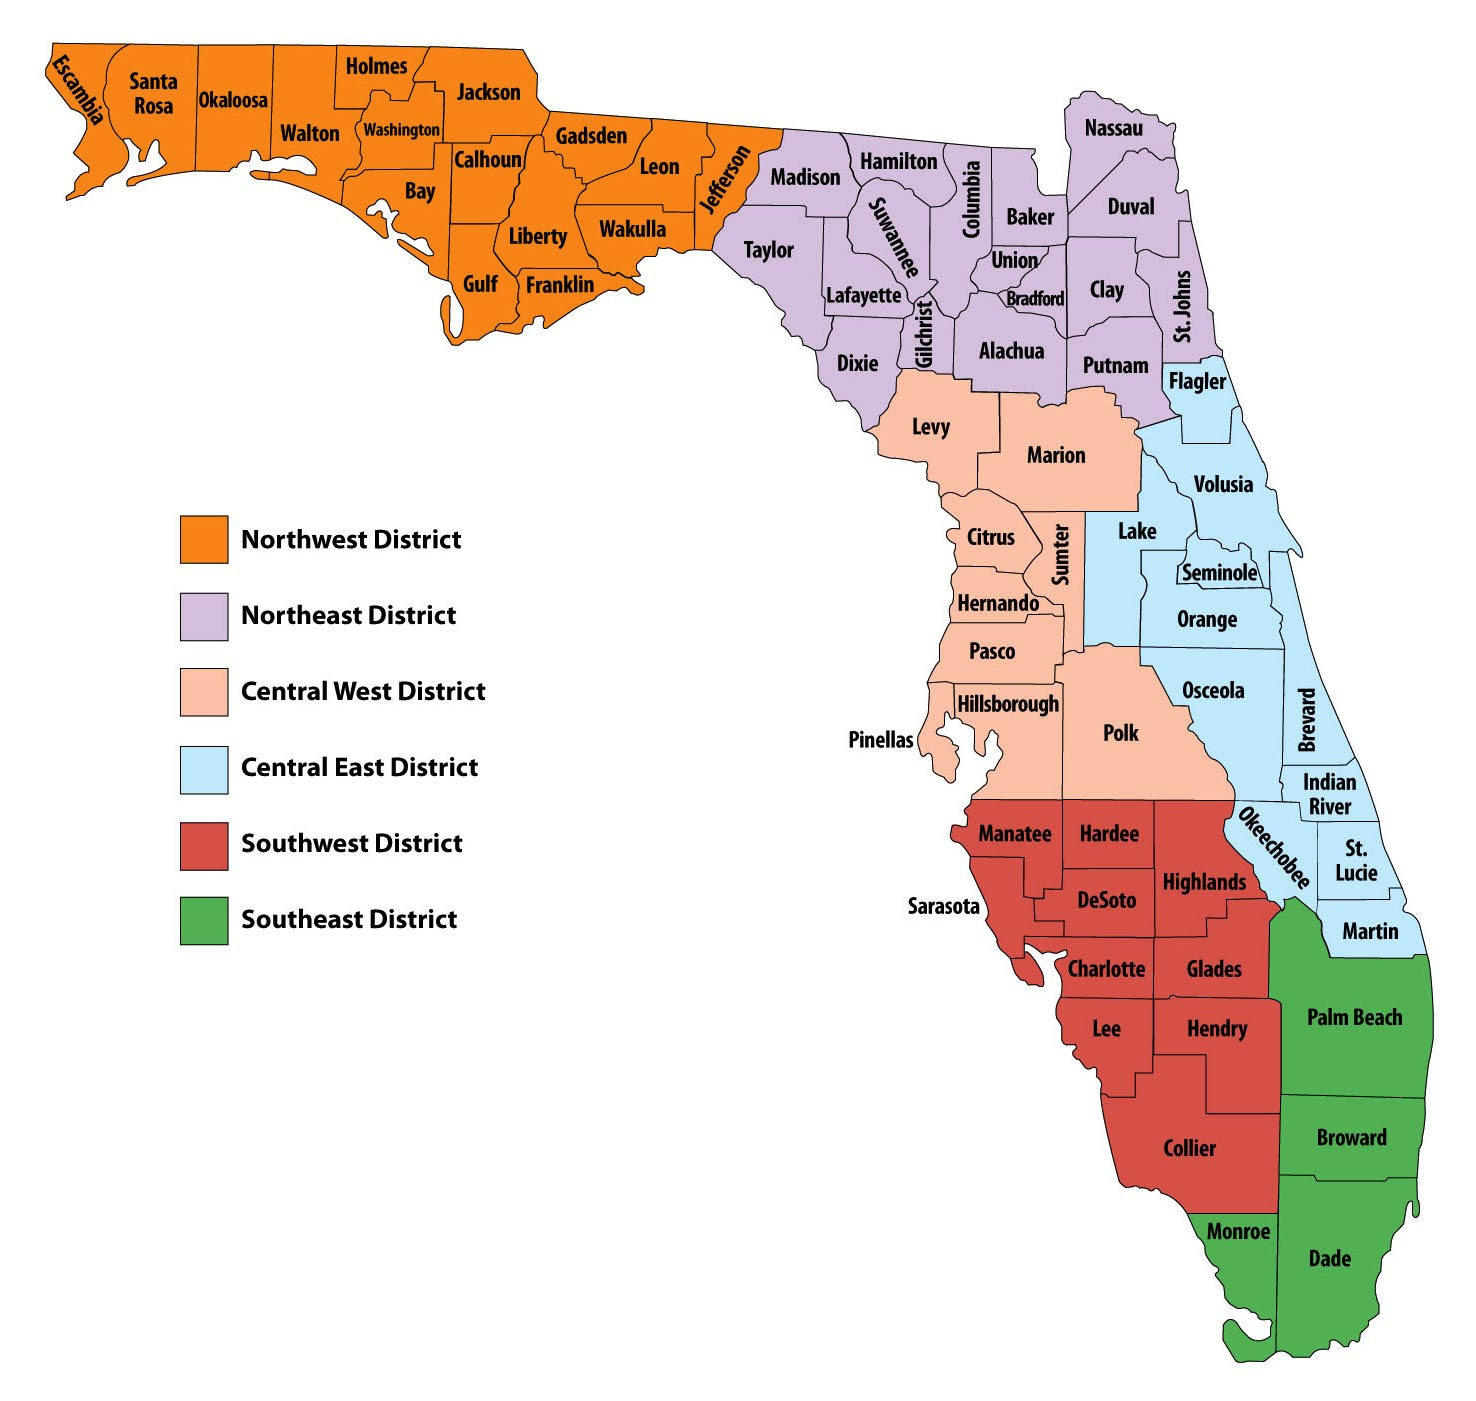 UNF COAS Political Science Public Administration Florida - Map of cities in florida